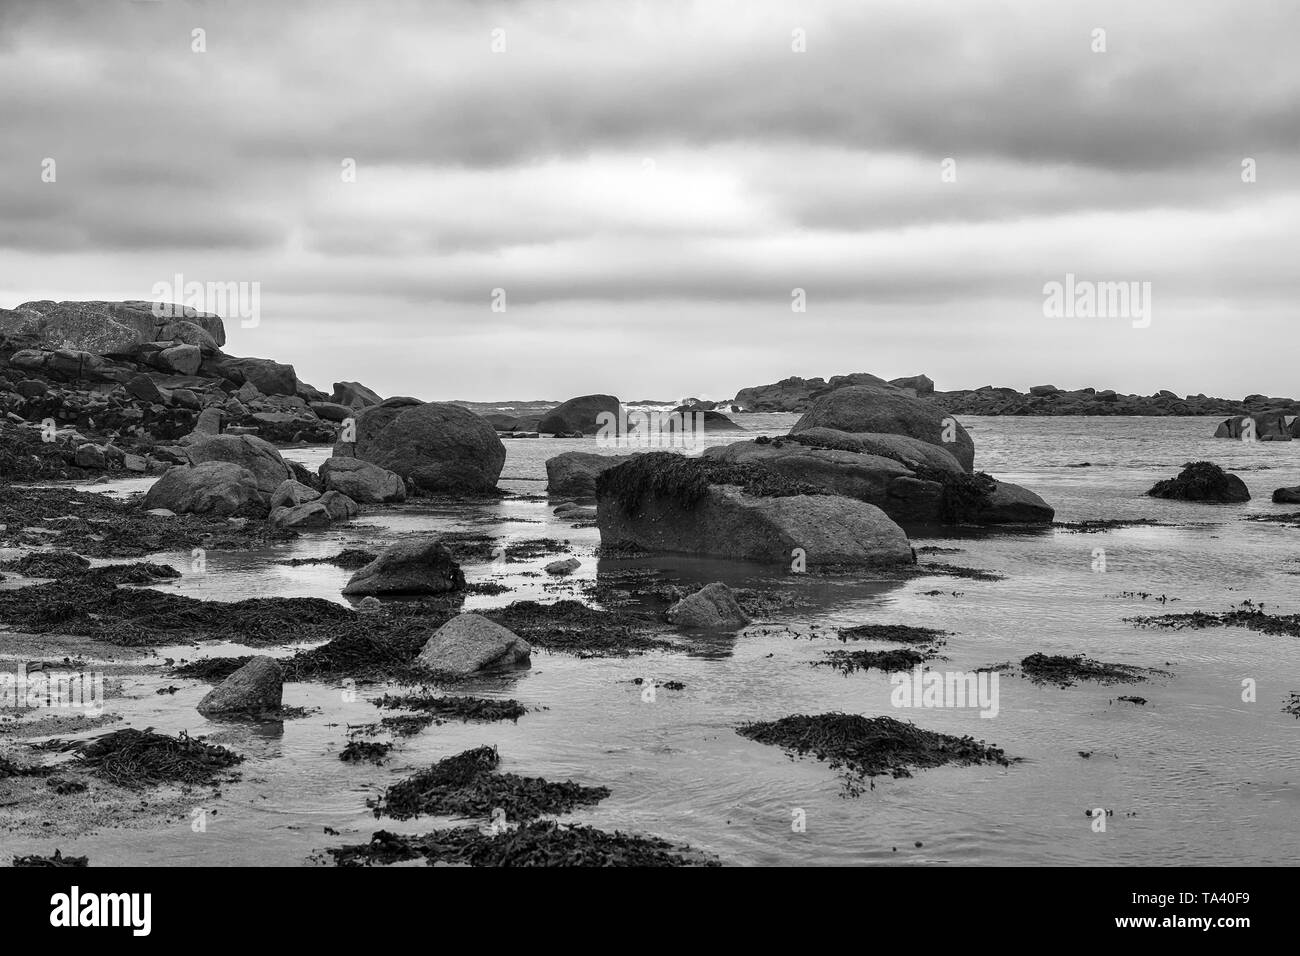 The rocky entrance to Porth Hellick at low tide: St. Mary's, Isles of Scilly, UK: black and white version - Stock Image